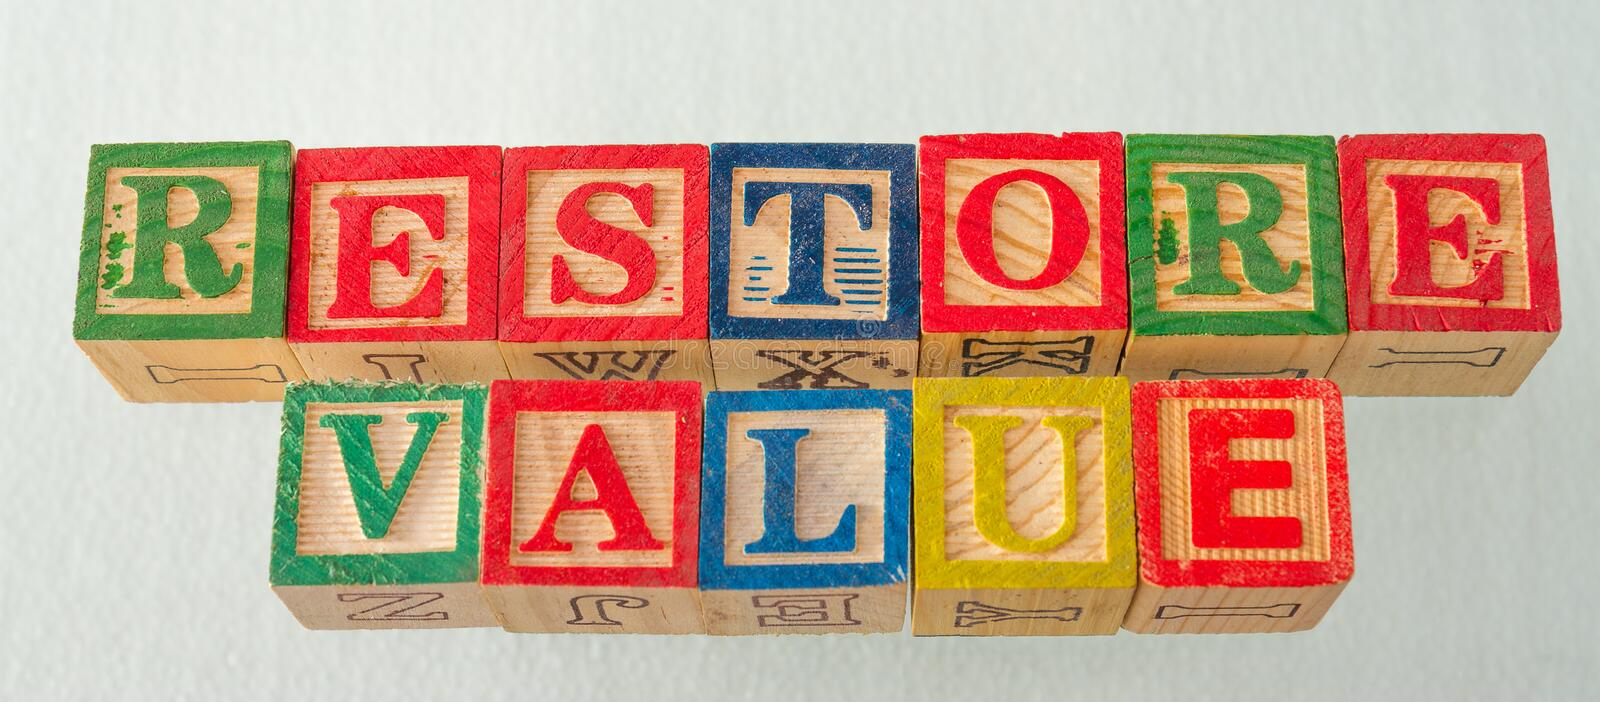 The term restore value visually displayed. On a white background using colorful wooden blocks image in landscape format stock photography